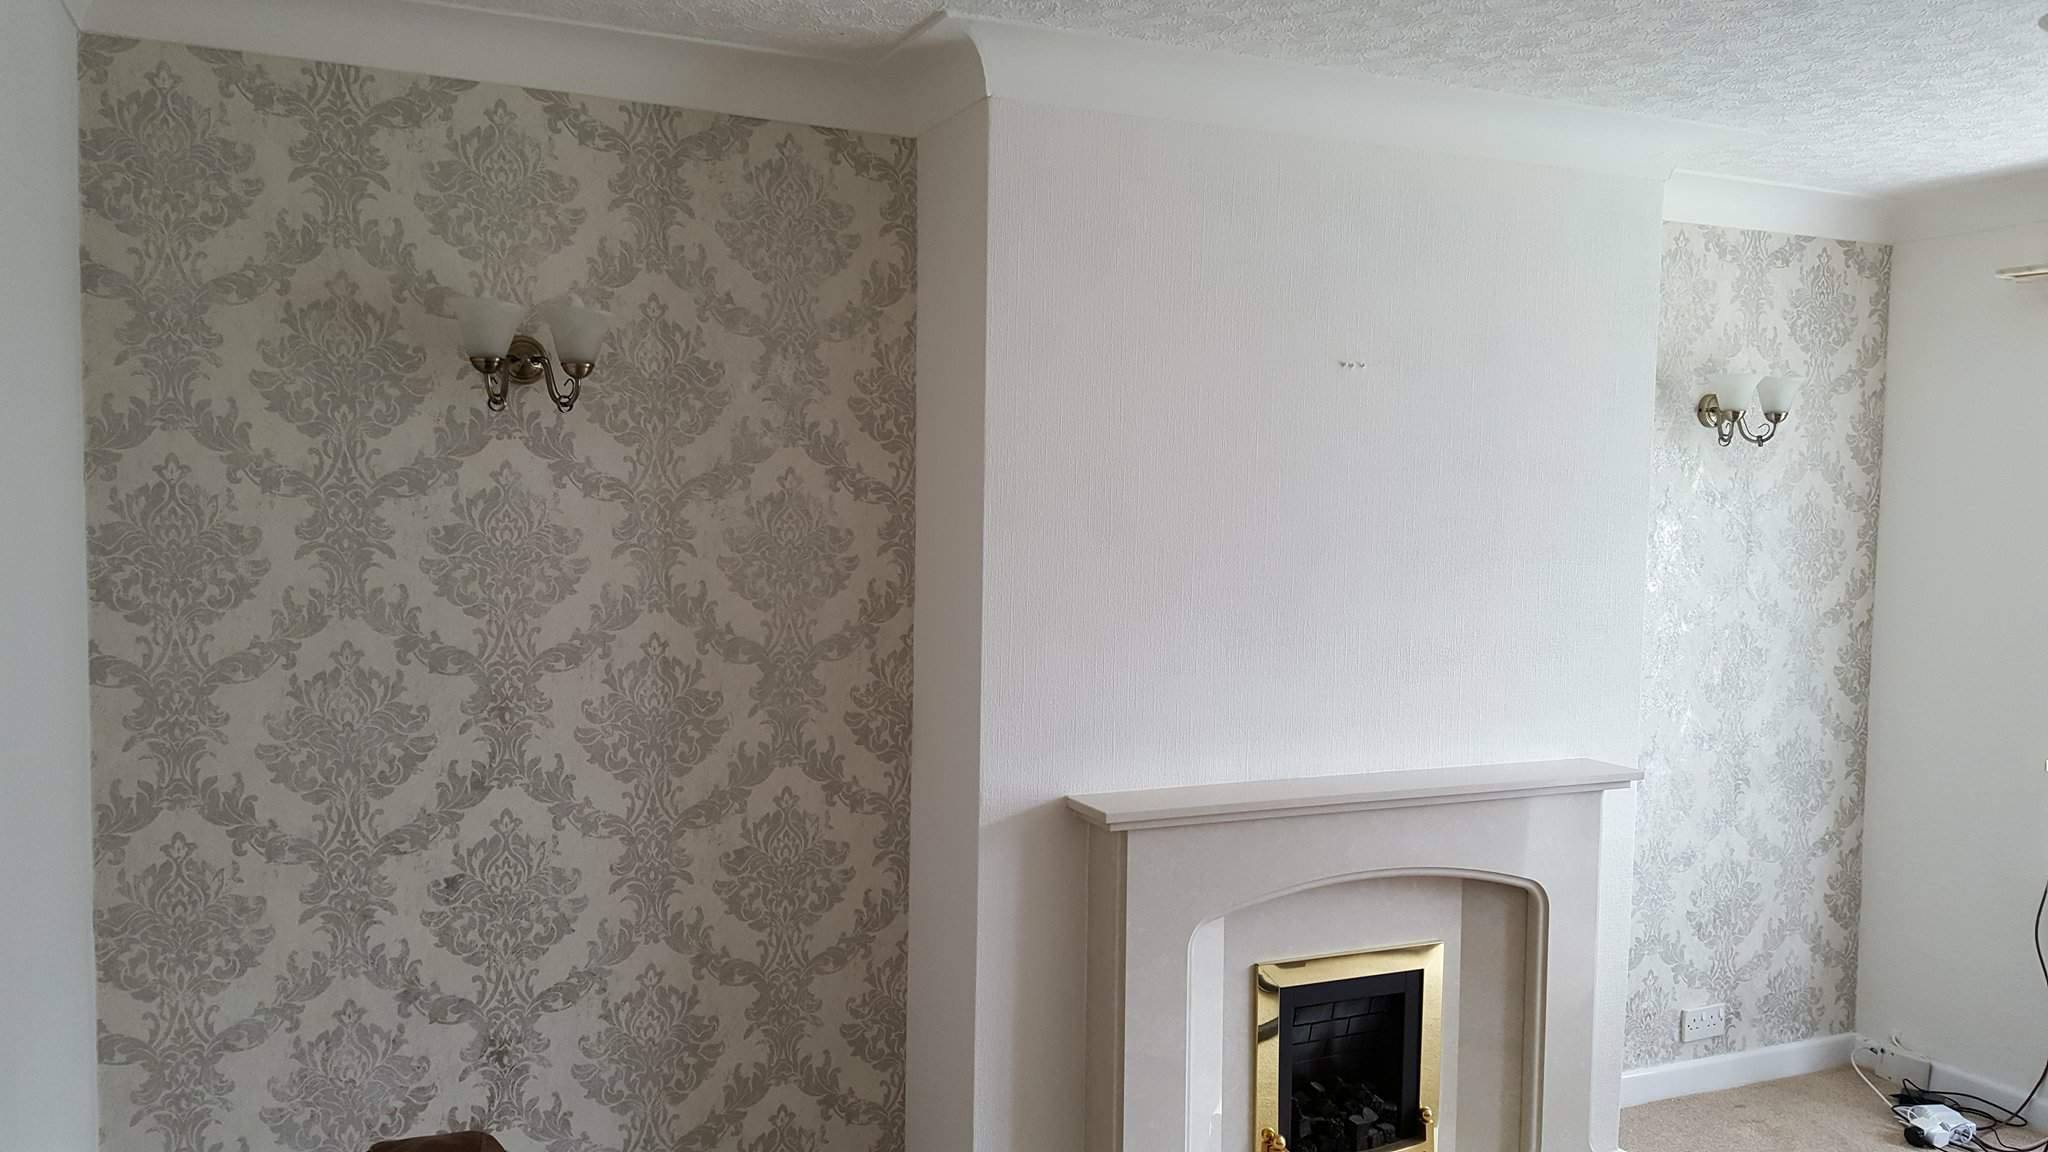 DME Painting and Decorating Services Keighley, West Yorkshire living room decor